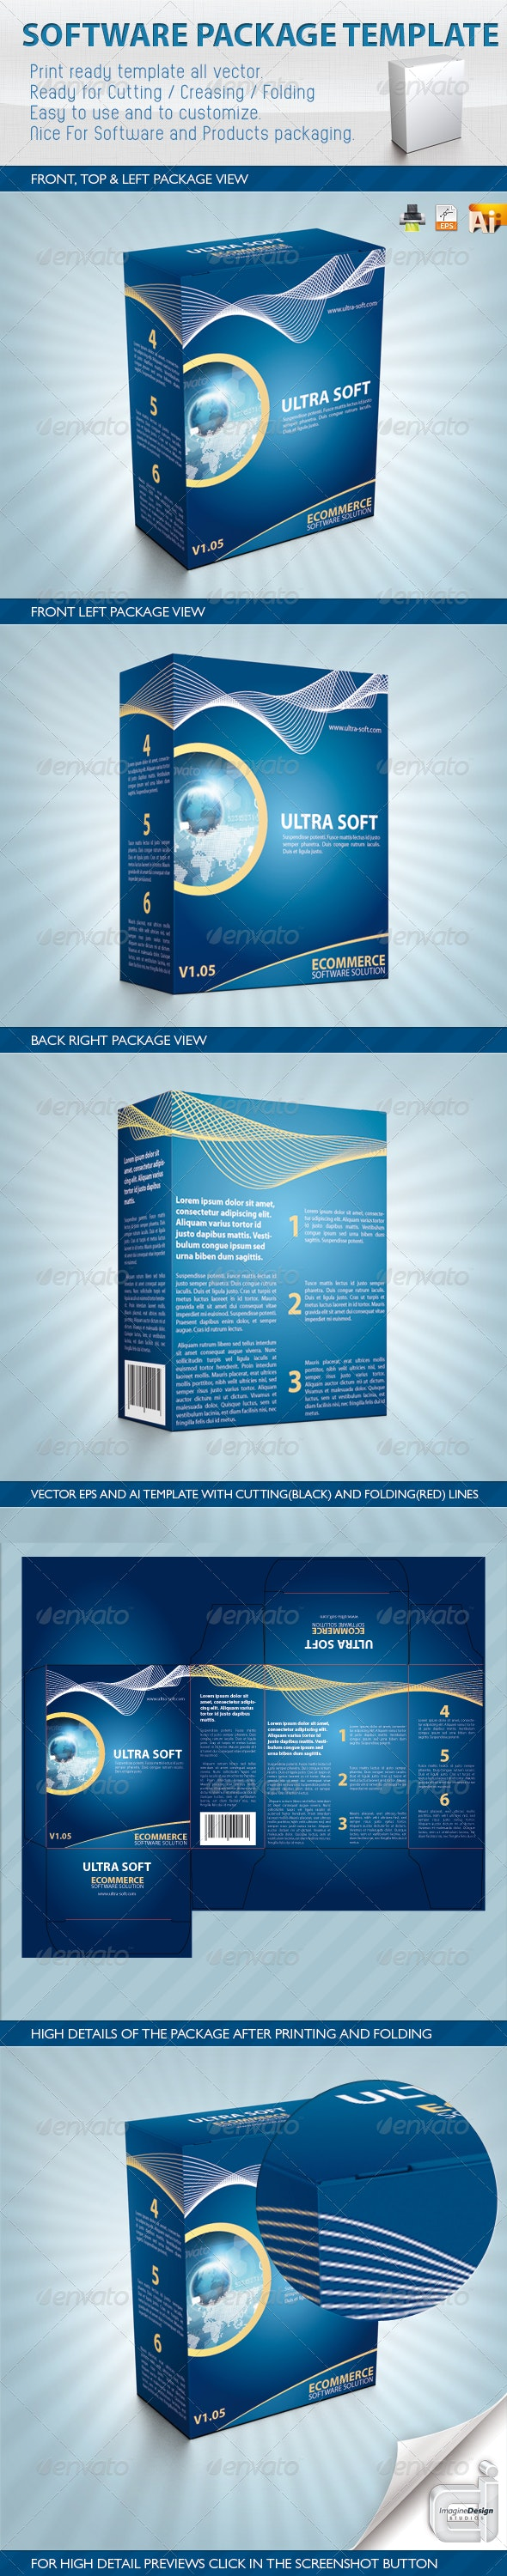 Software Package Template - Packaging Print Templates